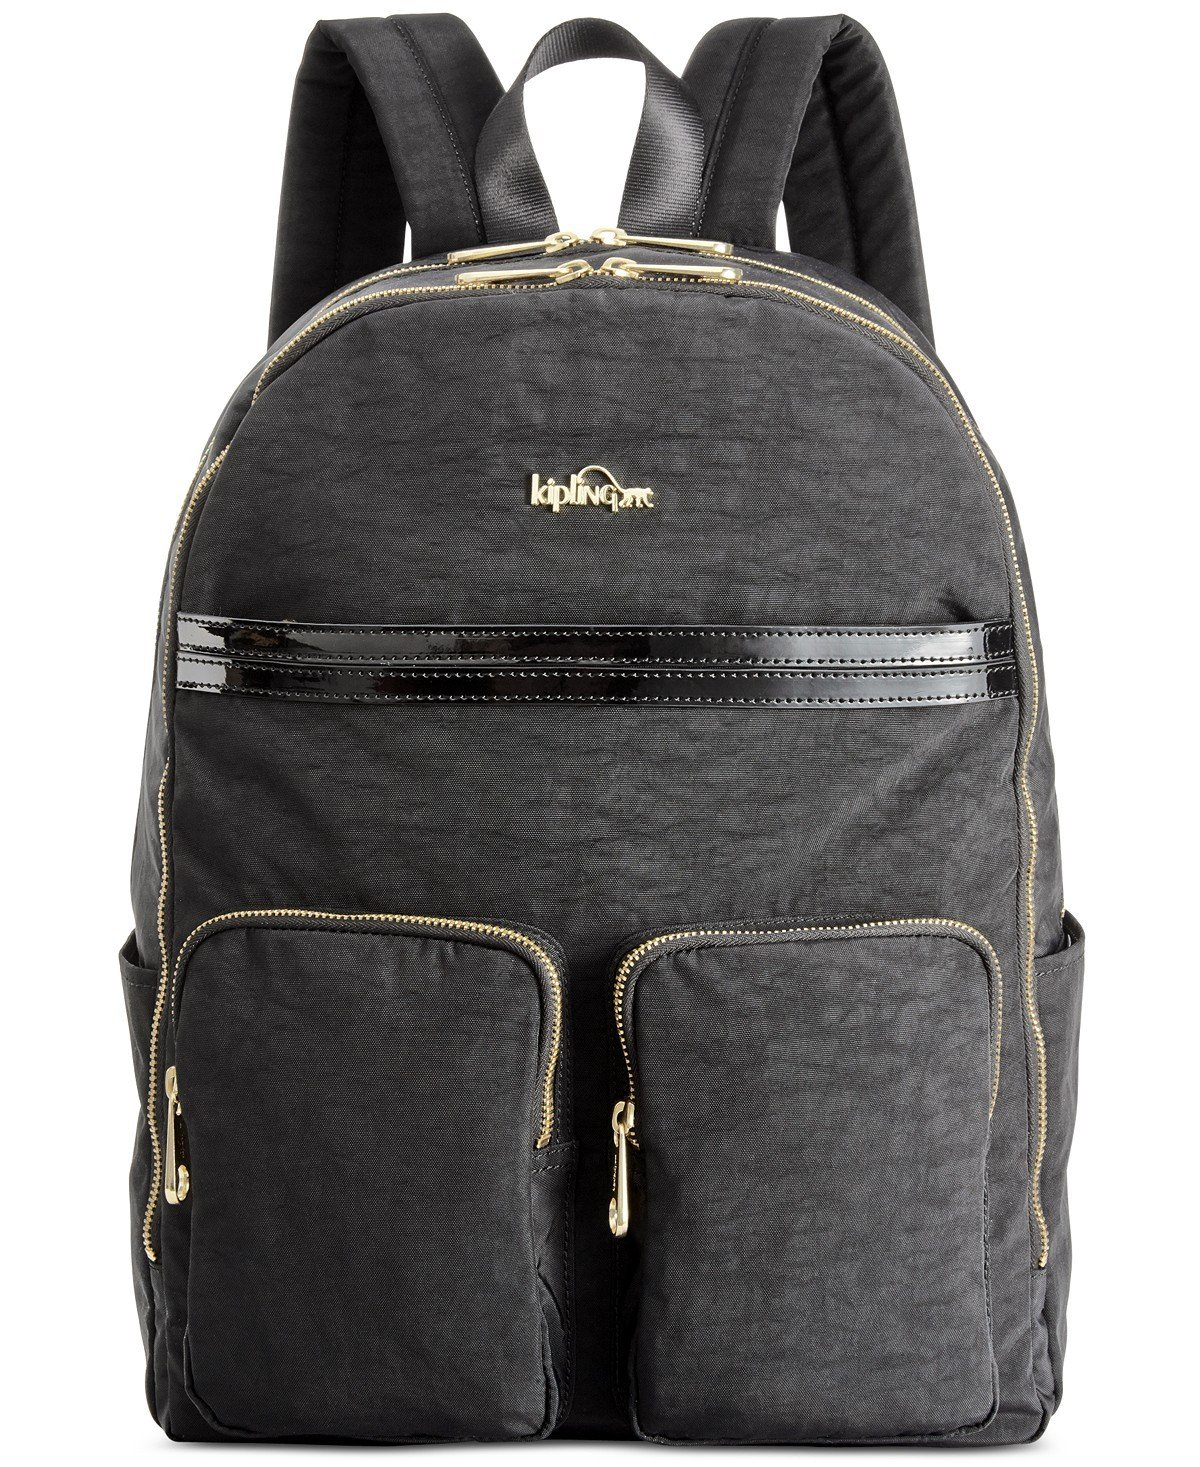 Functional Laptop Backpack